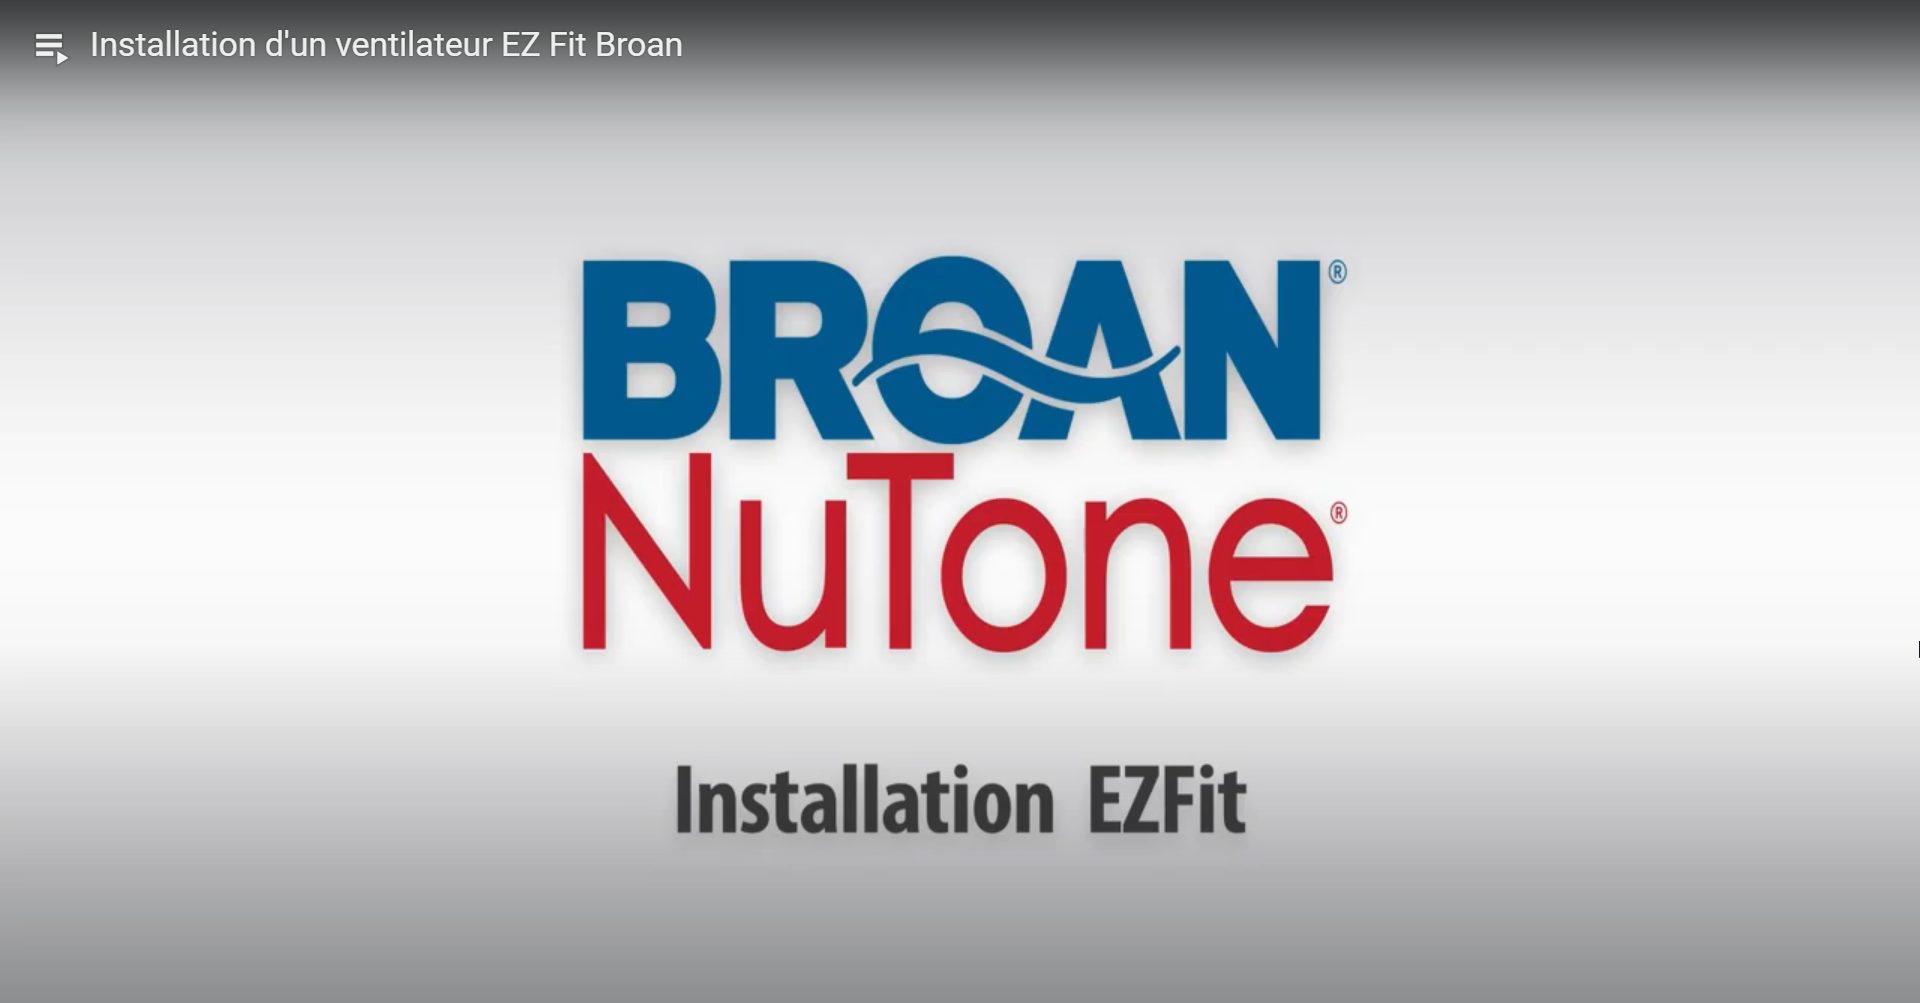 Installation d'un ventilateur EZ Fit NuTone